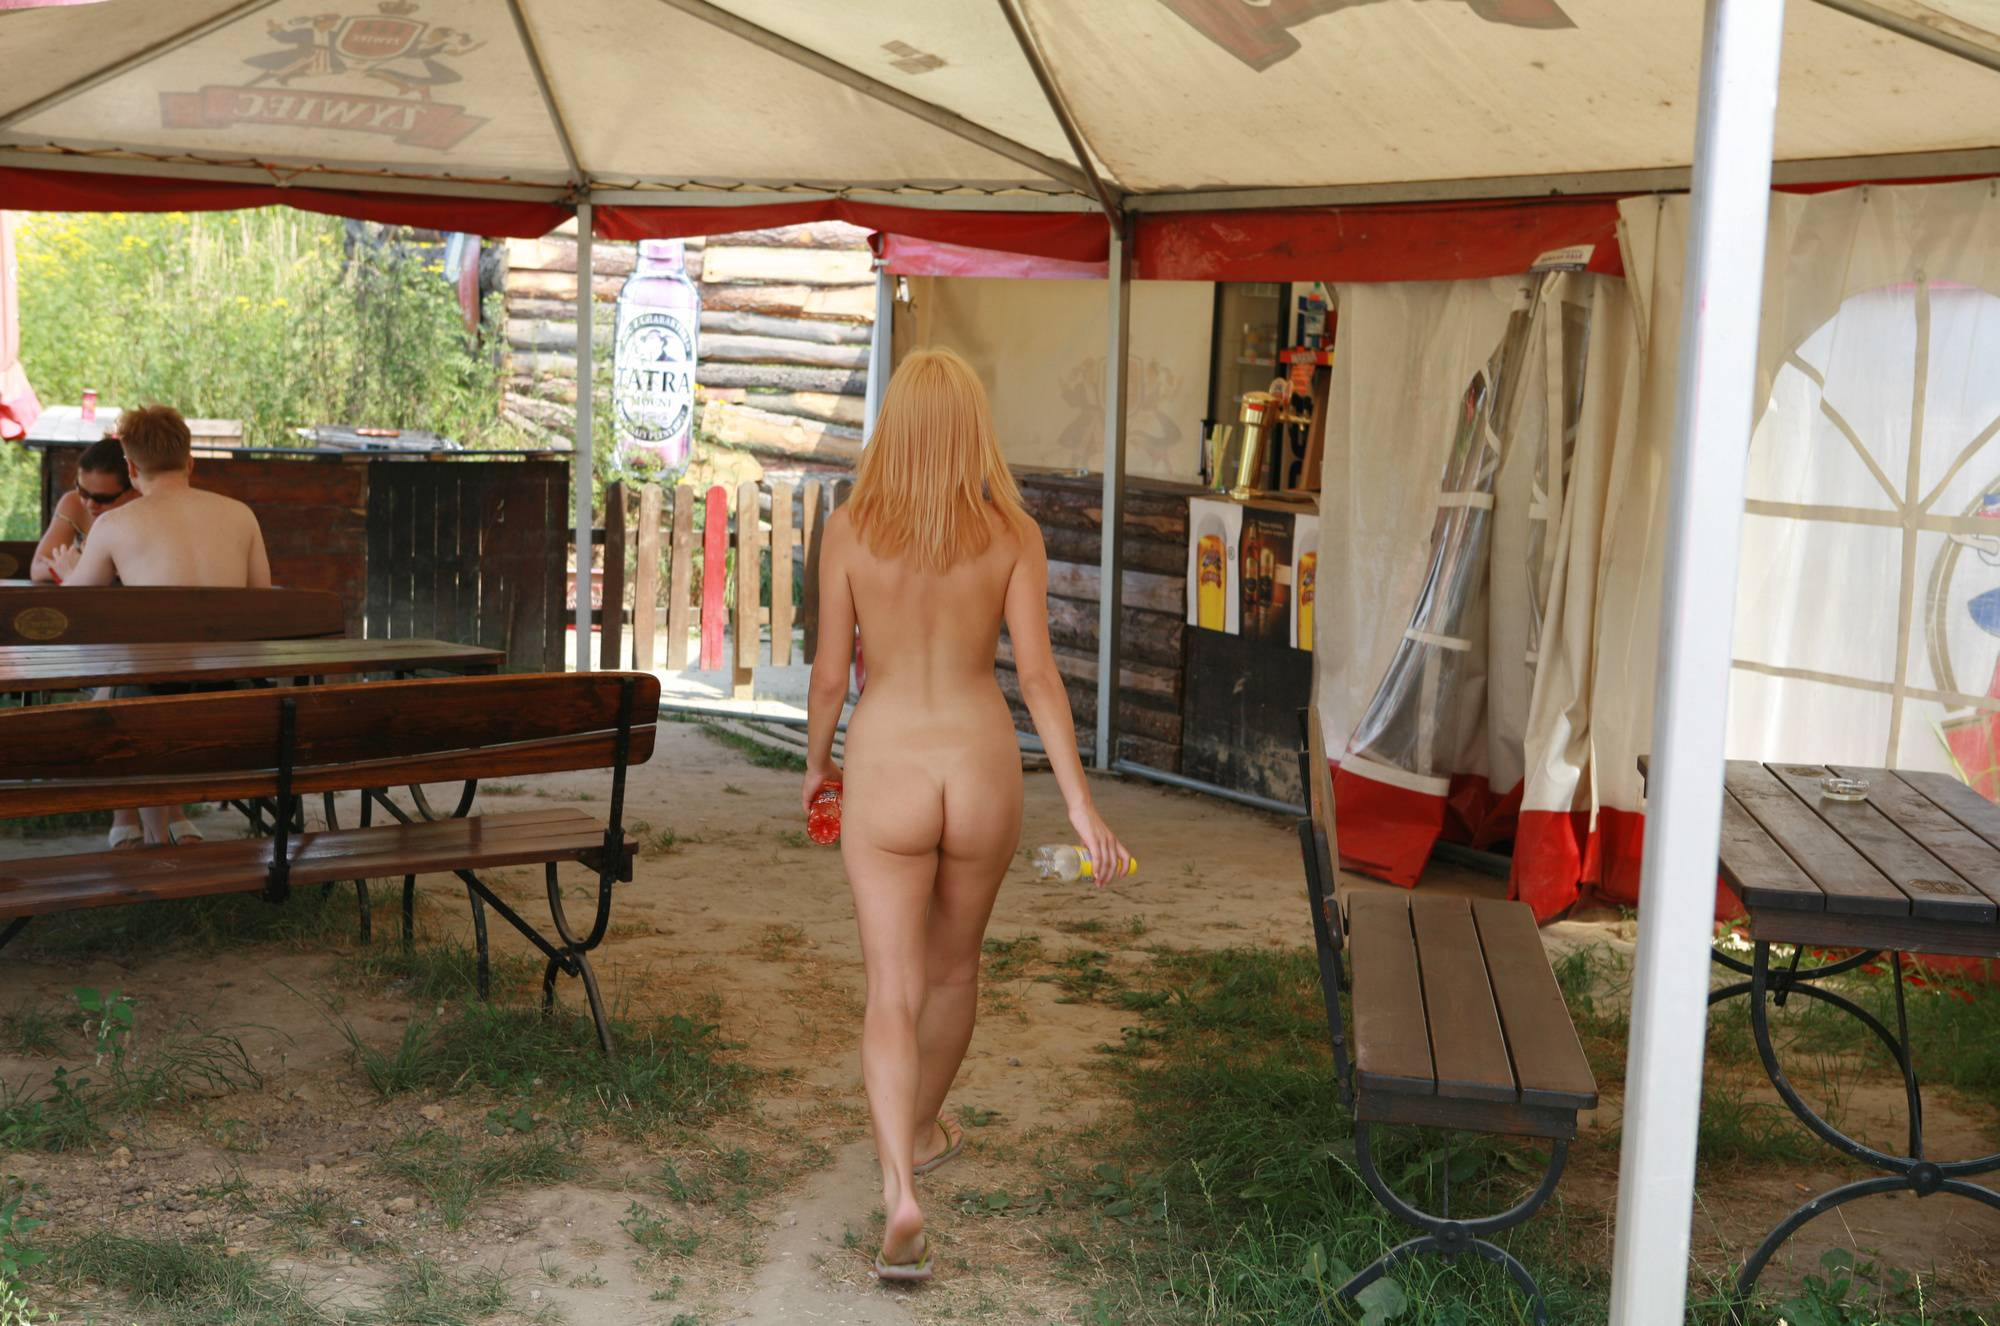 Pure Nudism Photos Jess' Outdoor Store Visit - 2